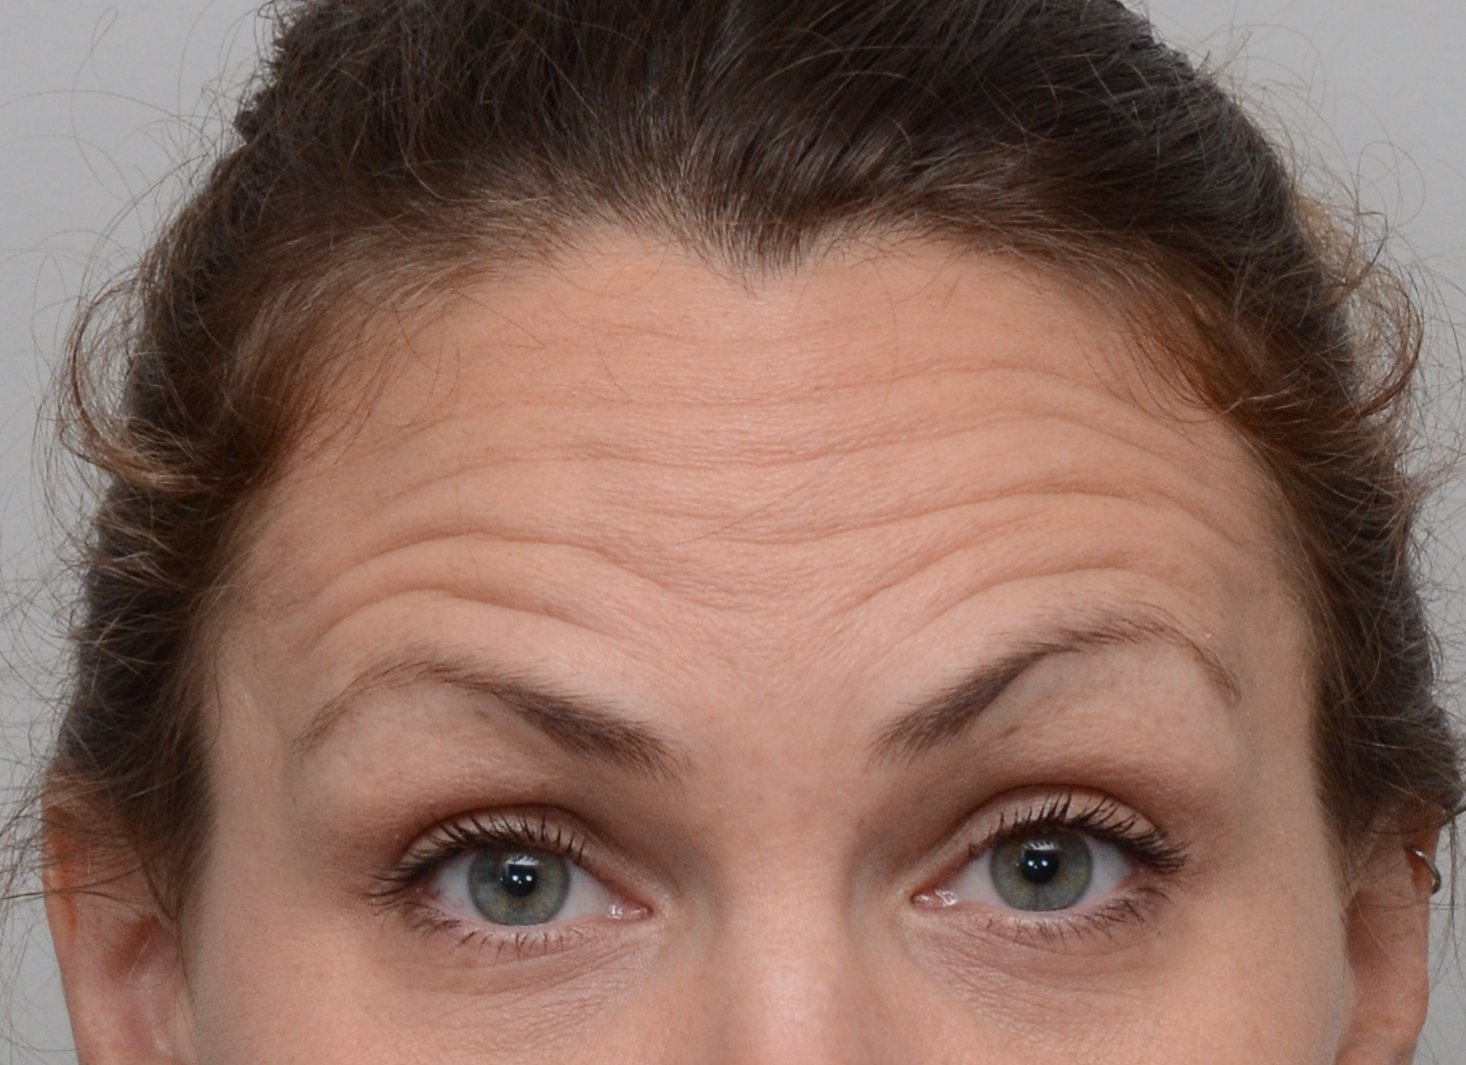 Patient picture before Botox at Nuance Facial Plastics